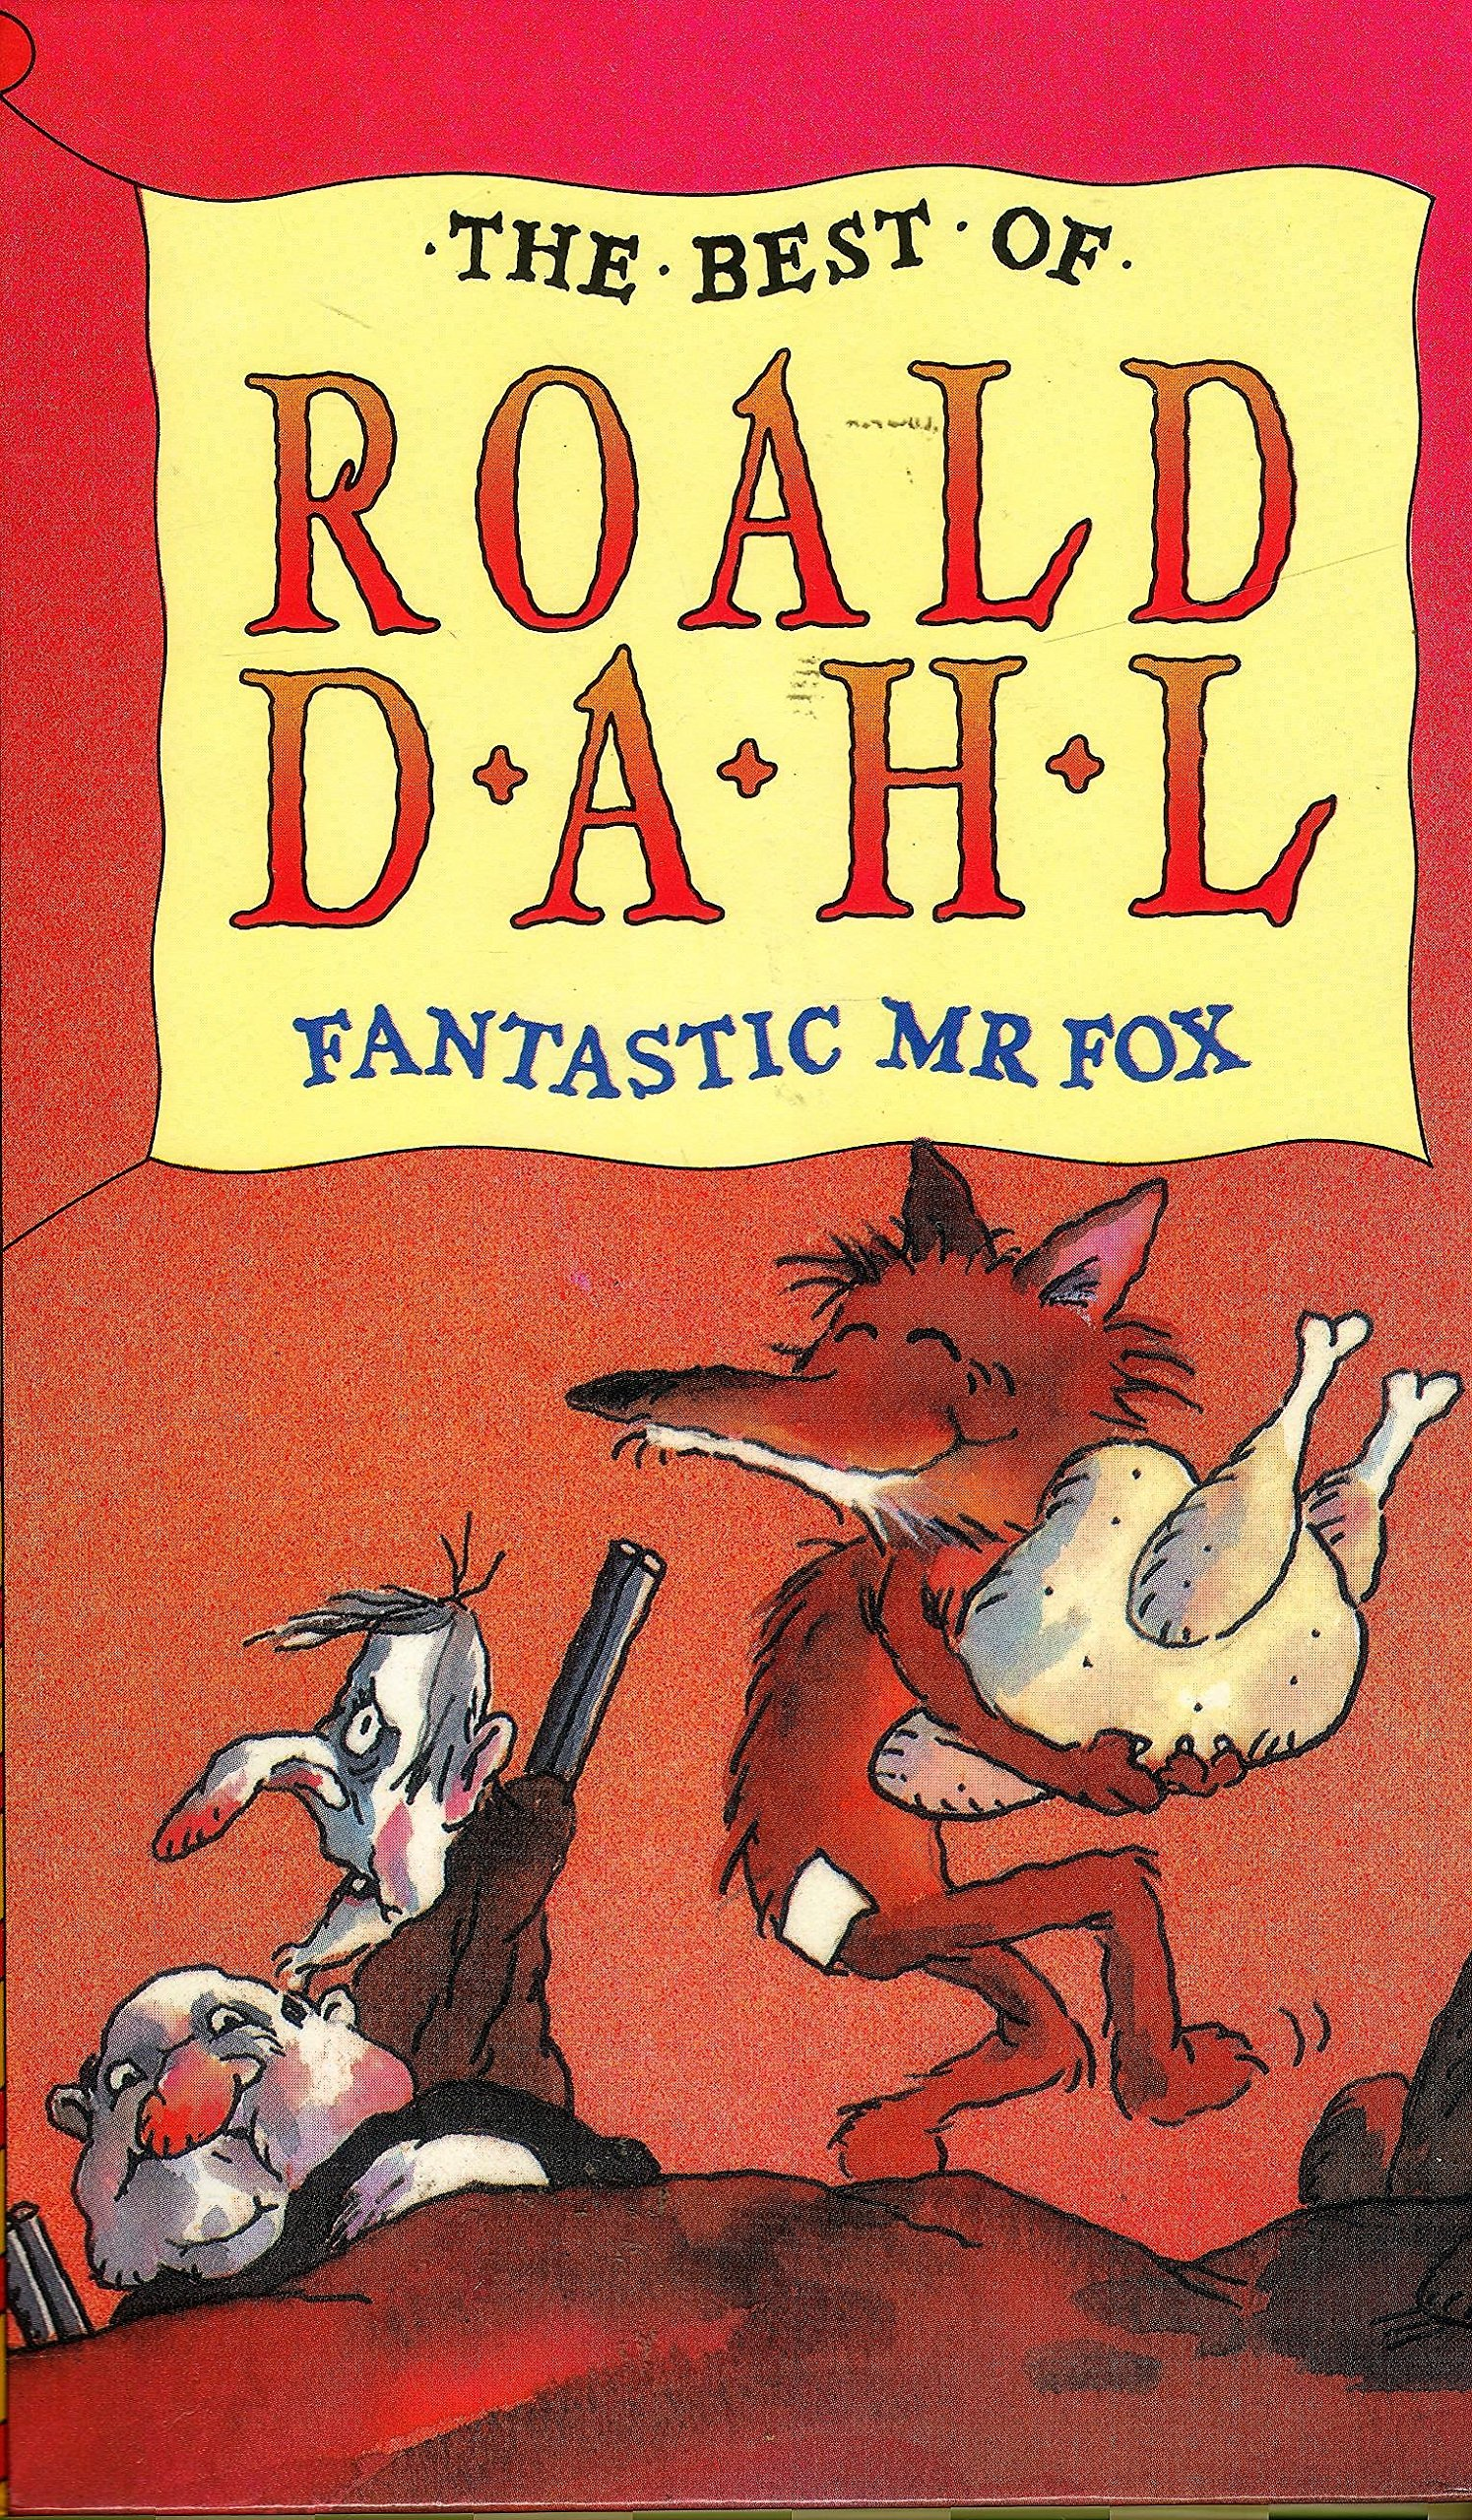 Buy Fantastic Mr Fox The Beat Of Roald Dahl Book Online At Low Prices In India Fantastic Mr Fox The Beat Of Roald Dahl Reviews Ratings Amazon In